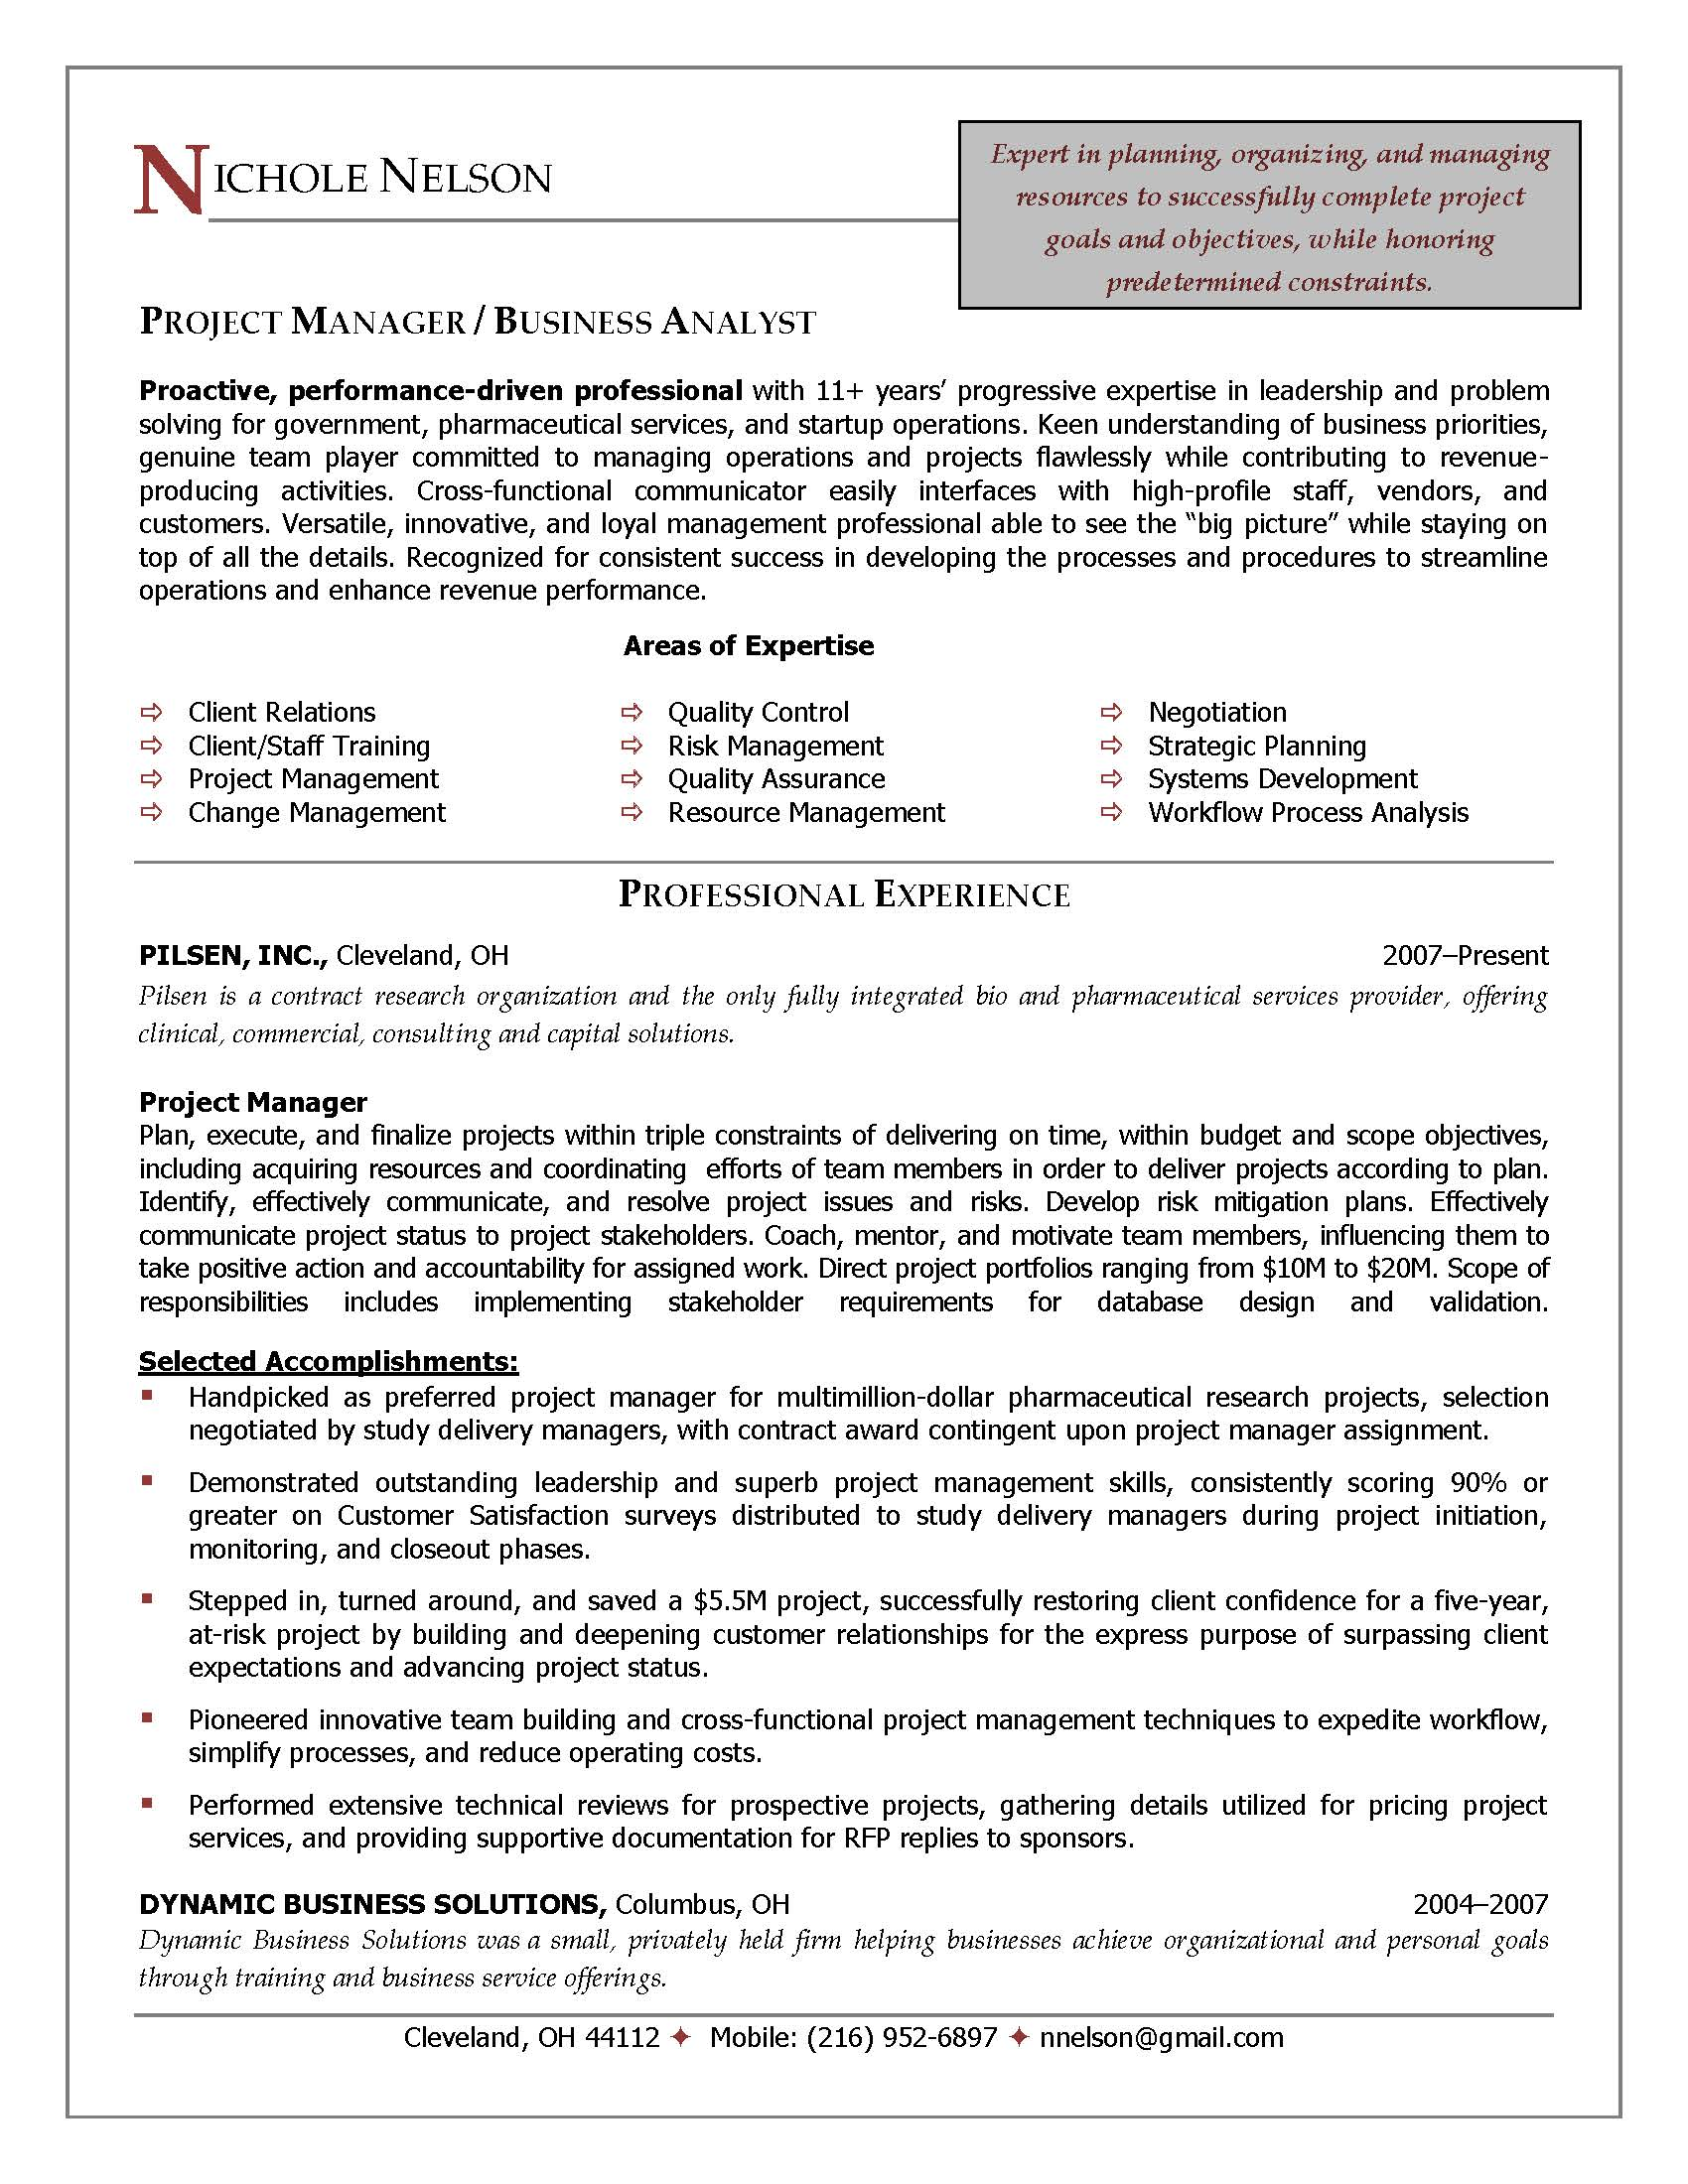 project manager resume sample provided by elite resume writing services - Example Project Manager Resume